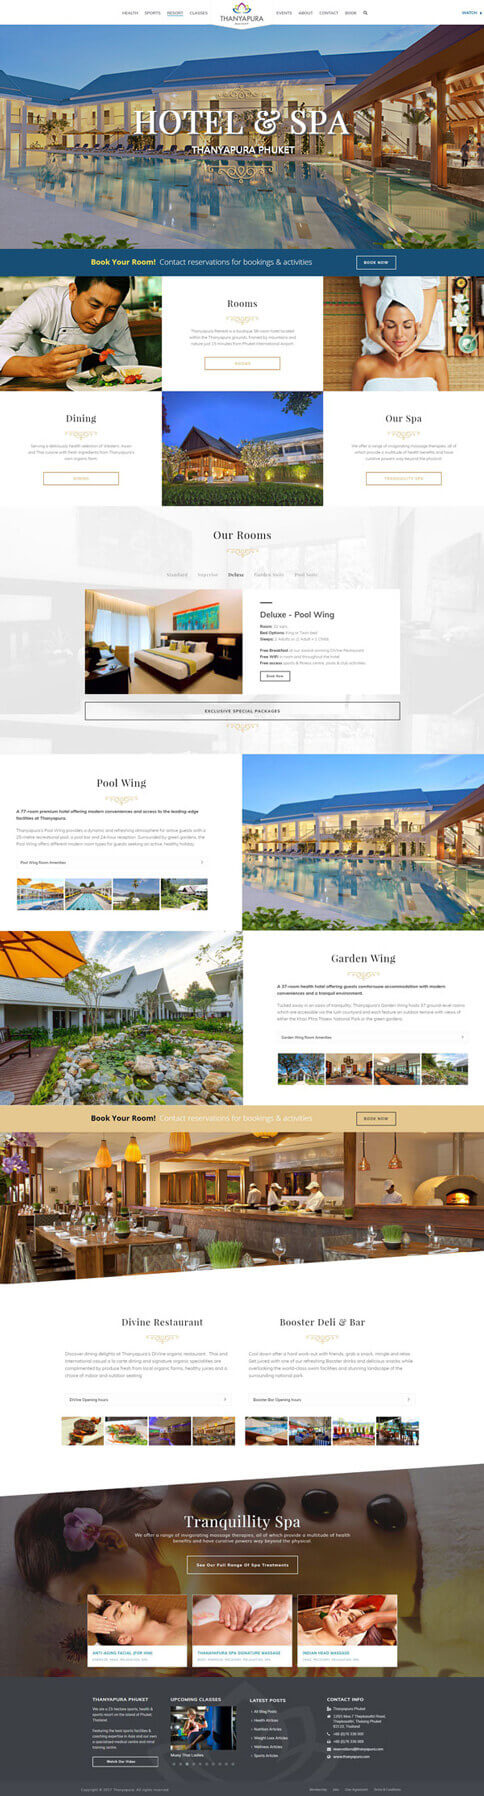 NEW Hotel Page - Thanyapura Phuket Website Redesign